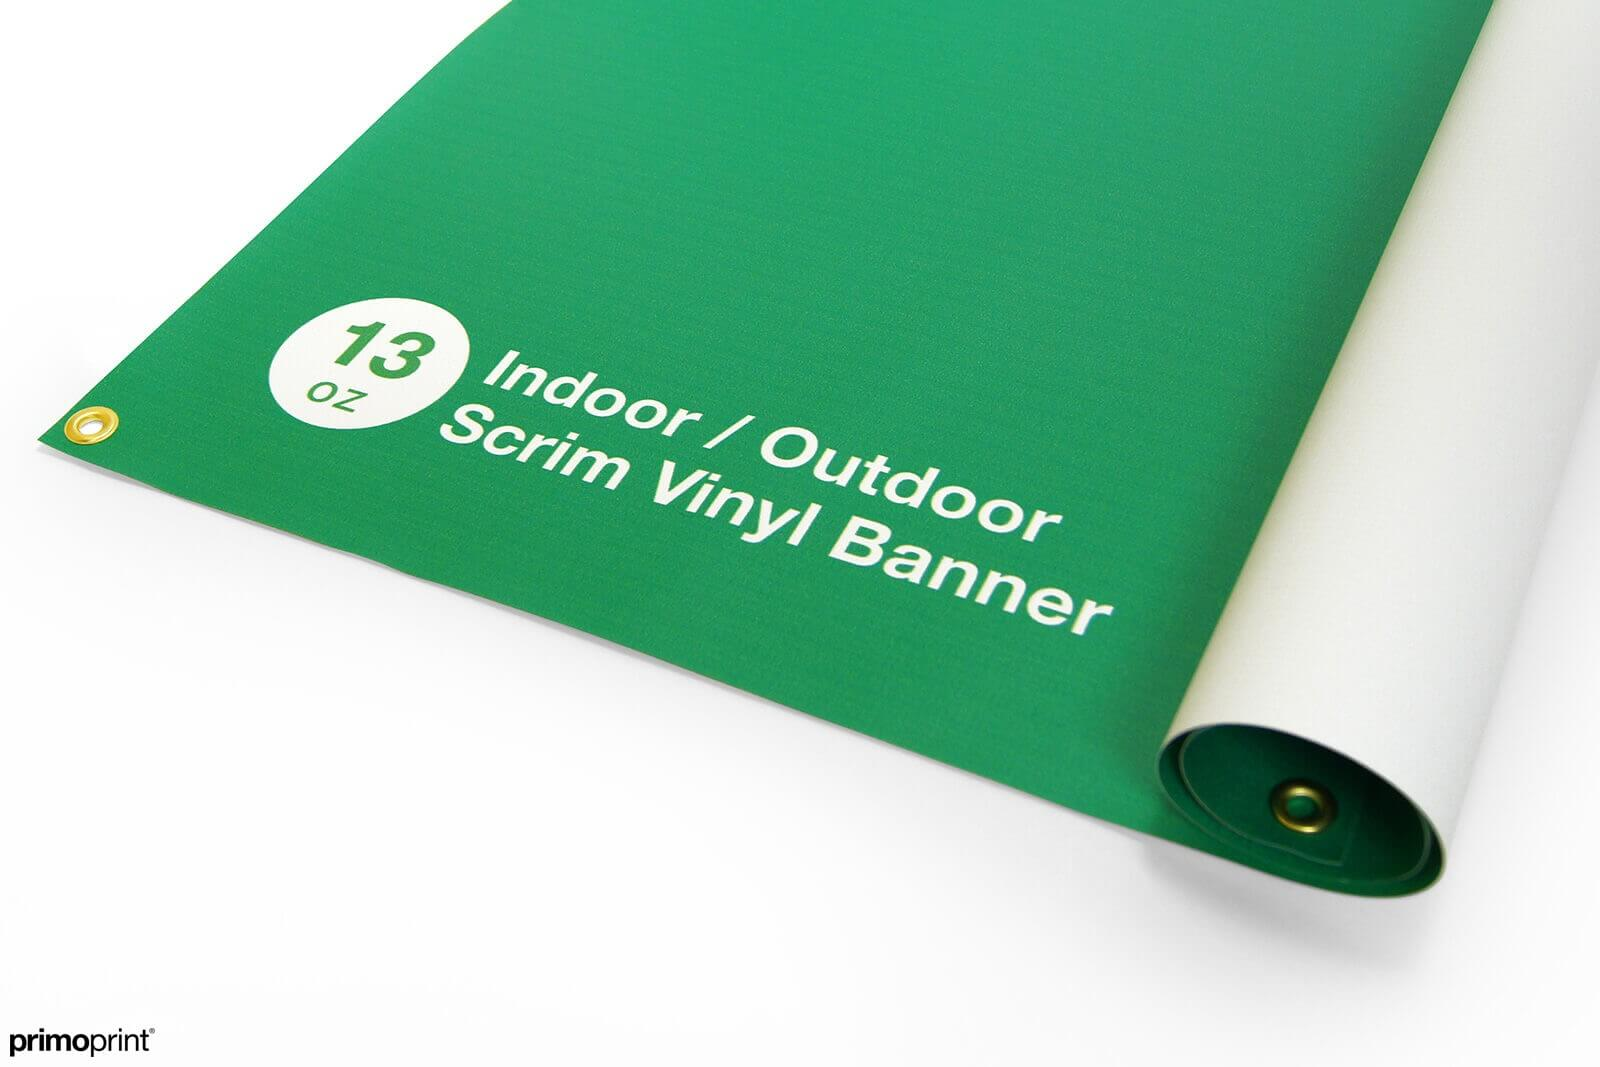 13oz Indoor / Outdoor scrim vinyl banner.